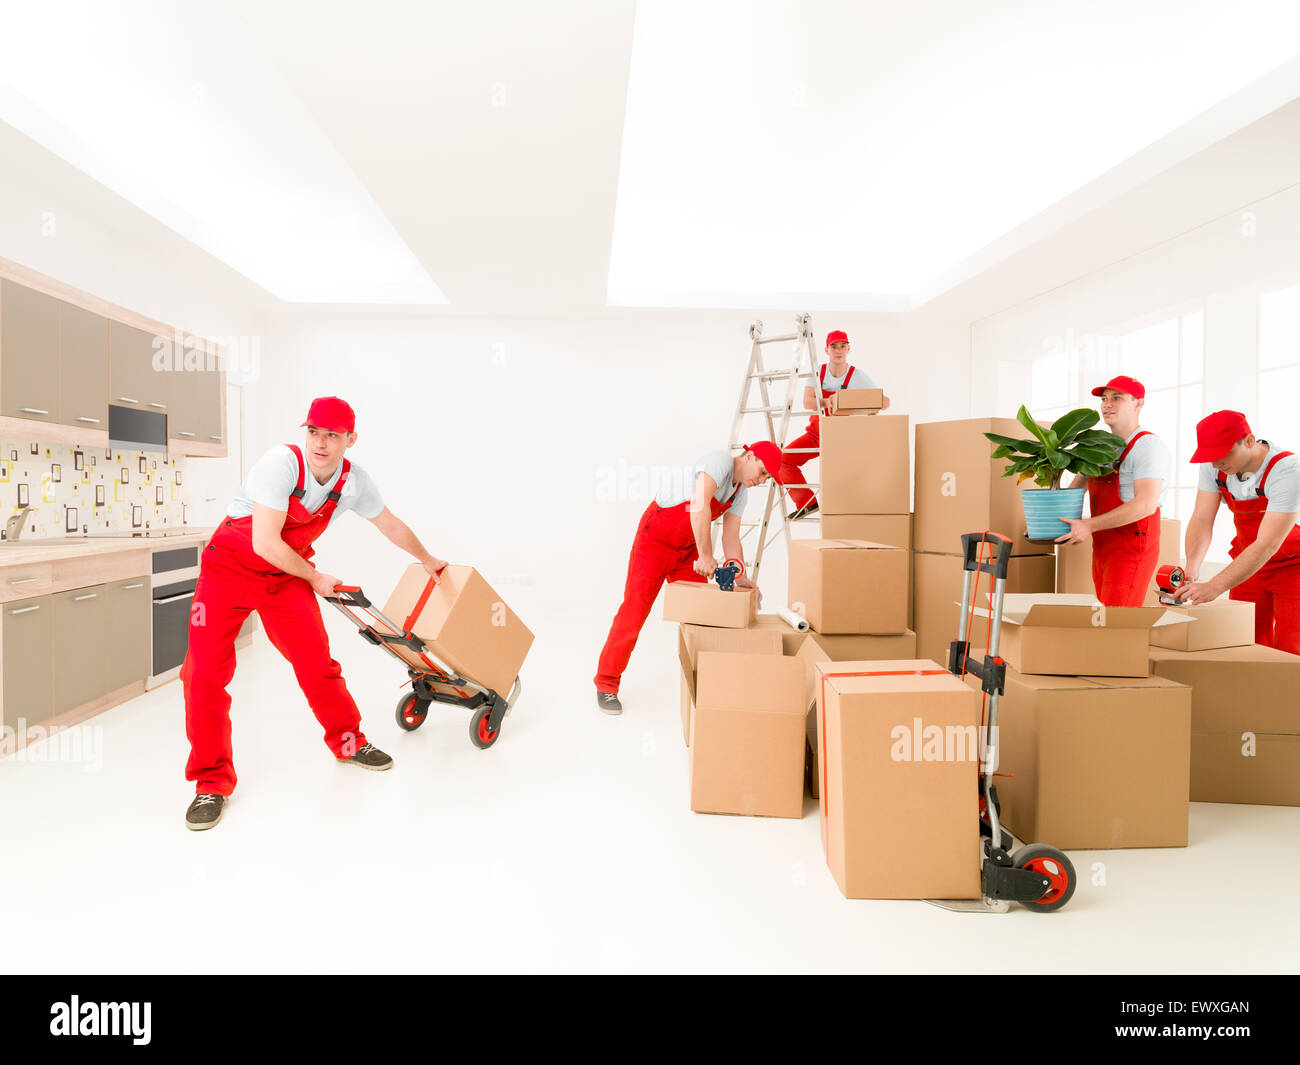 delivery man at work, delivering cargo to new house. digital composite image - Stock Image